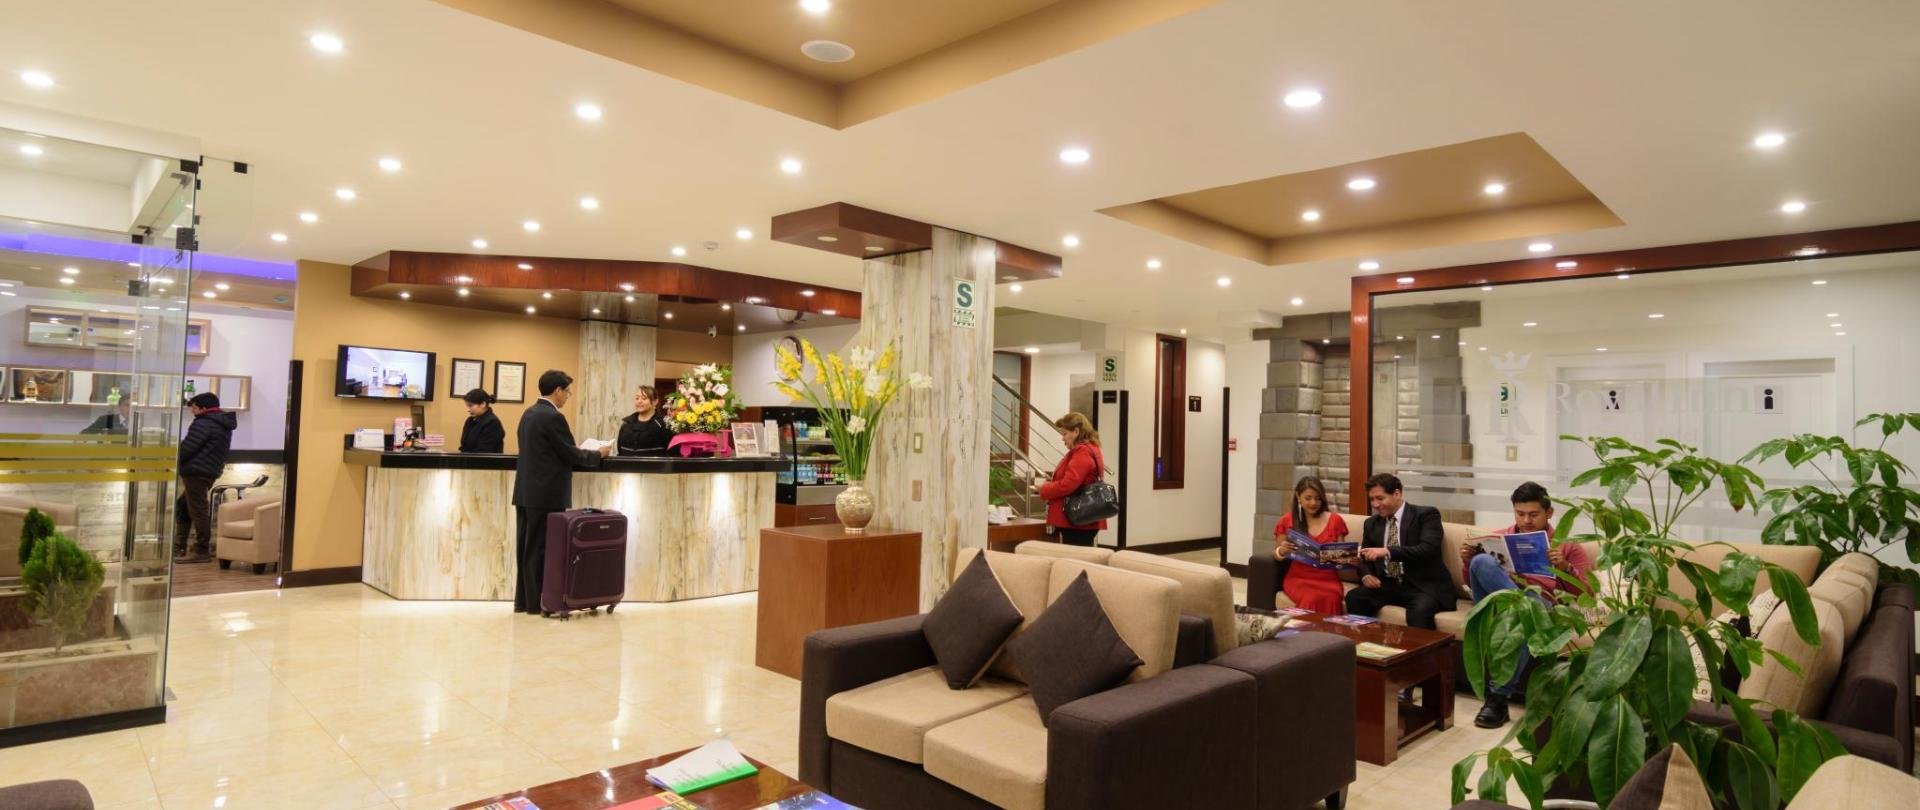 Royal Inn Cusco Hotell